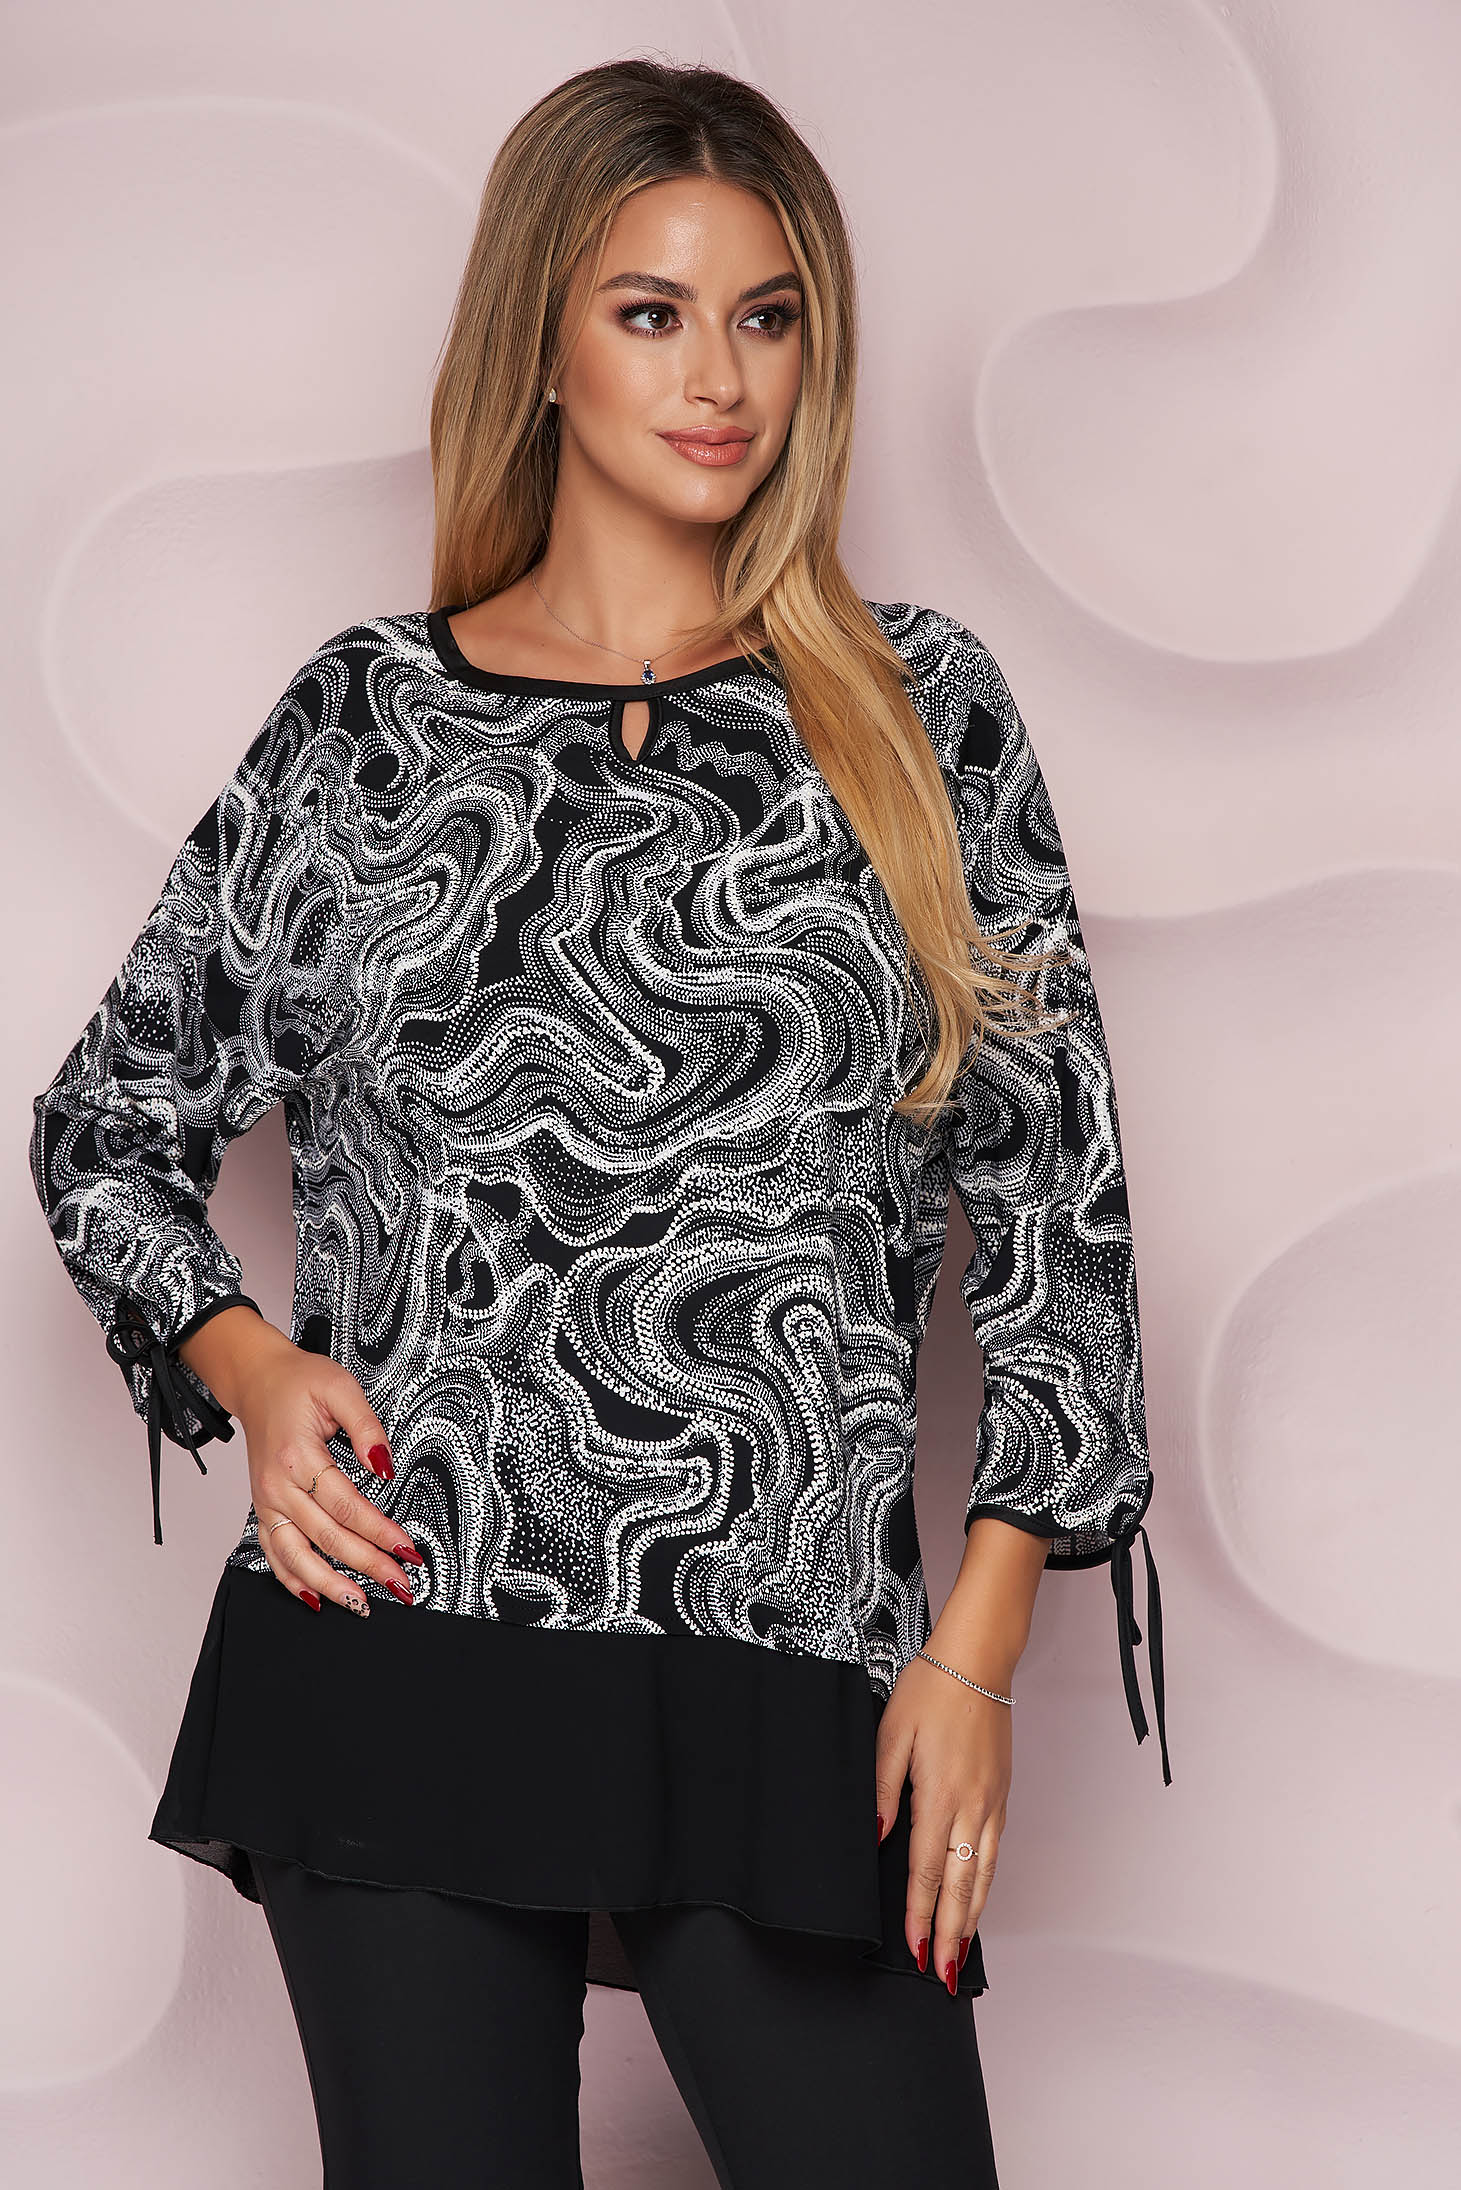 Women`s blouse office loose fit light material from elastic fabric with graphic details